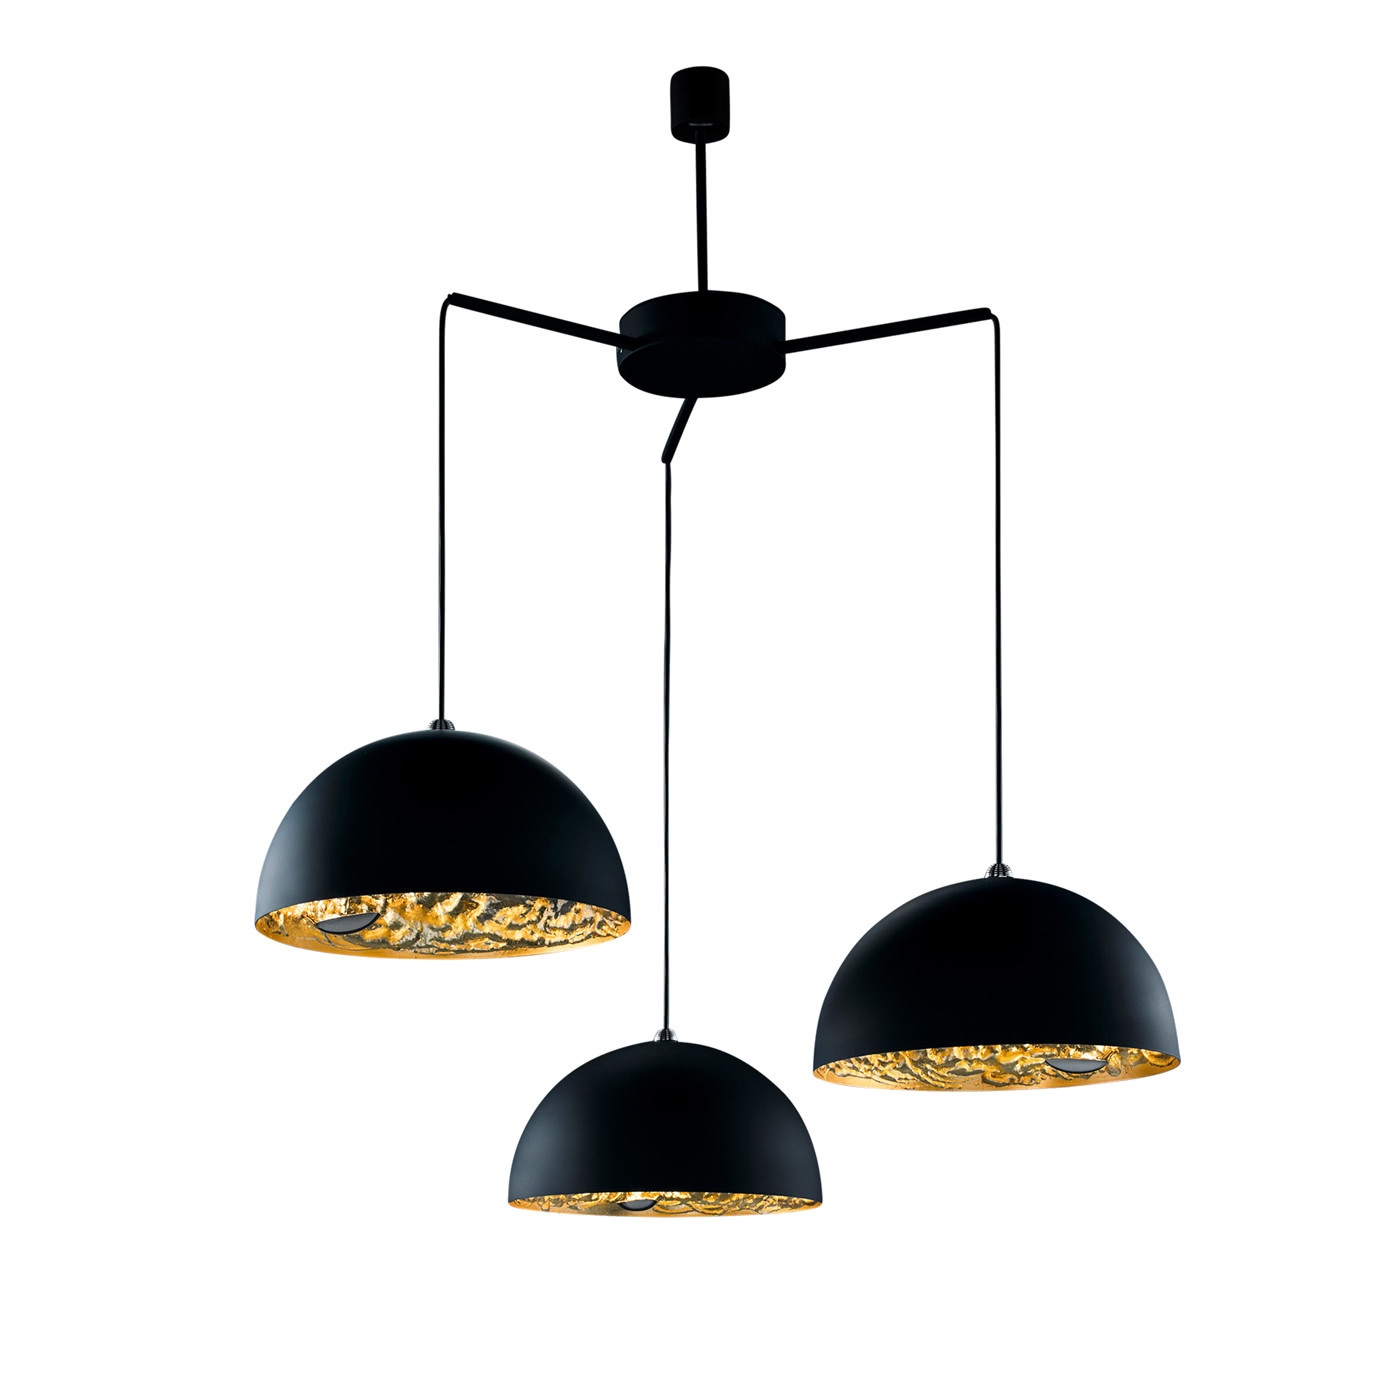 Catellani & Smith Stchu-Moon 02 Chandelier